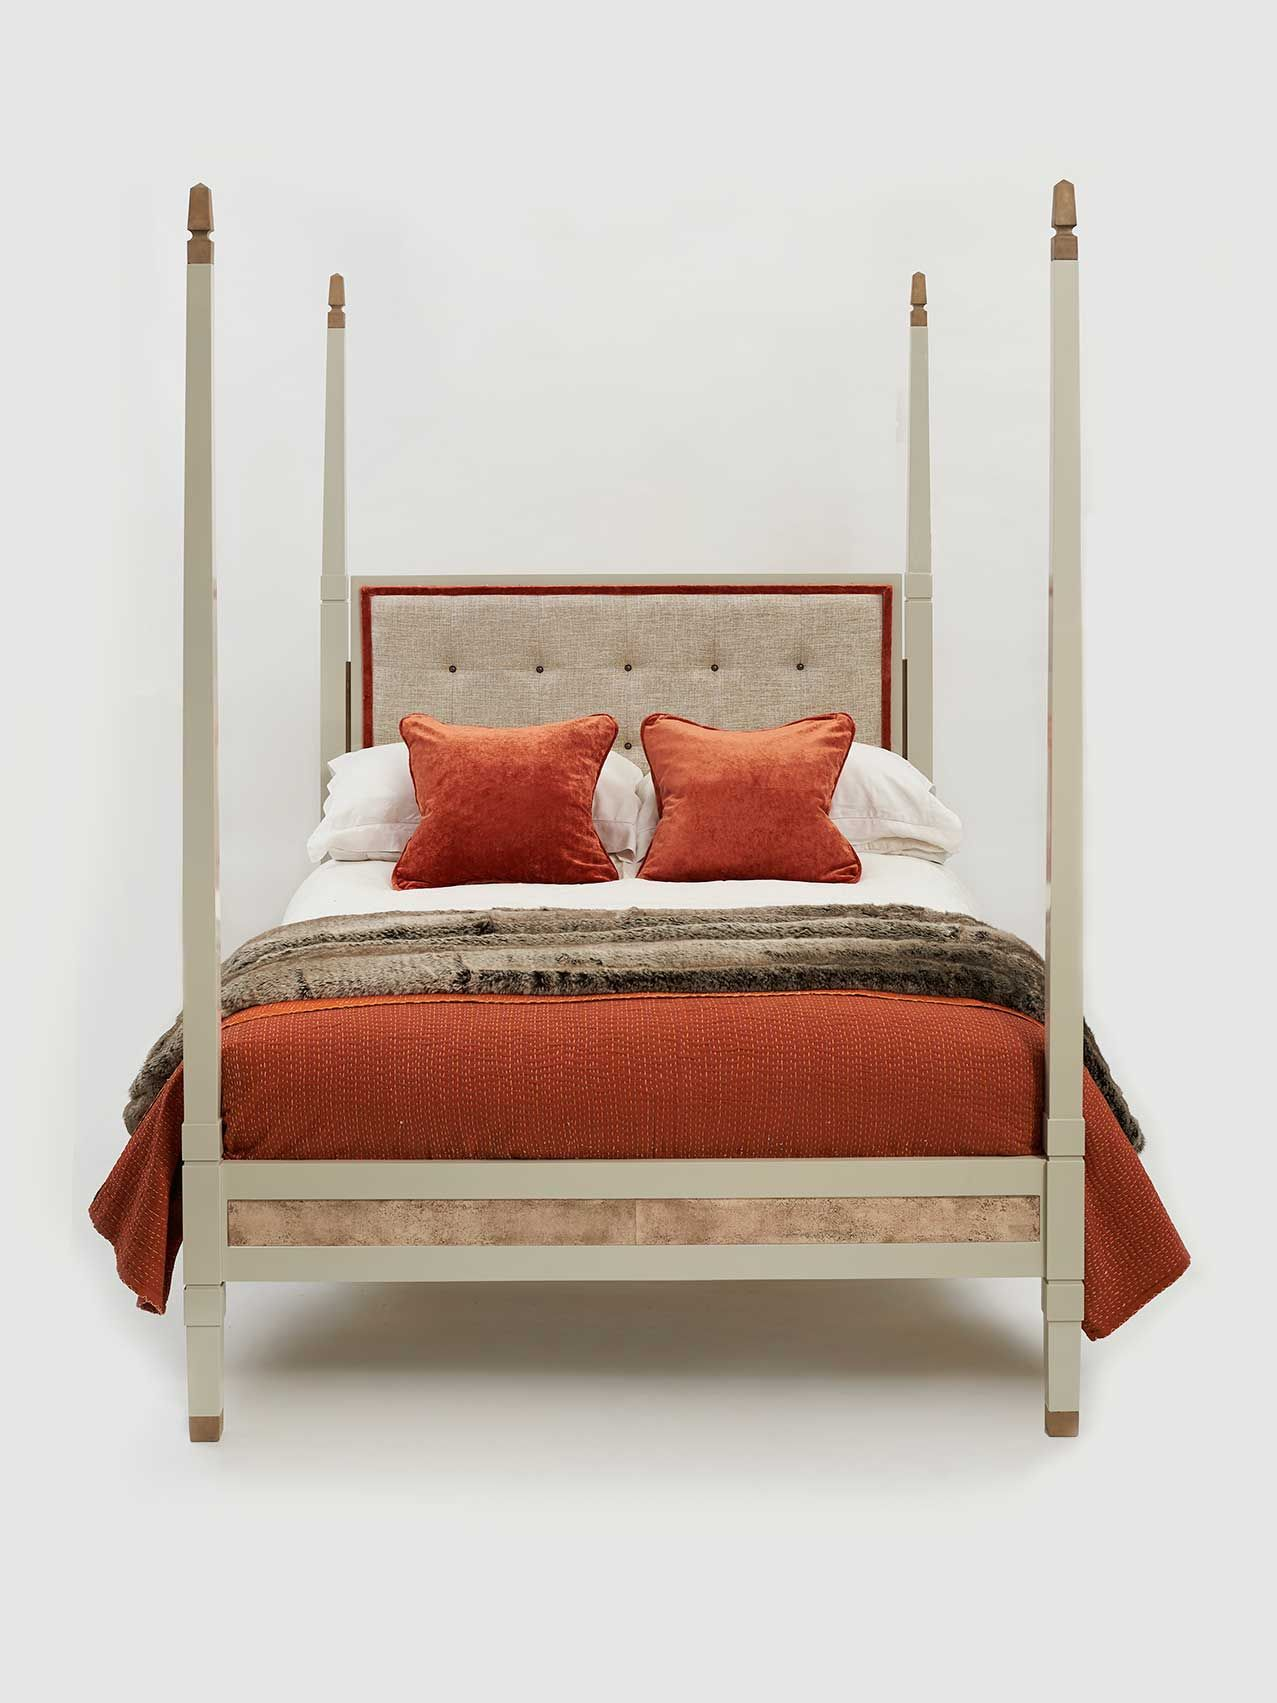 Couchtisch Colonial Evo Colonial Bed Ce300 Ce304 306 Furniture In 2018 Pinterest